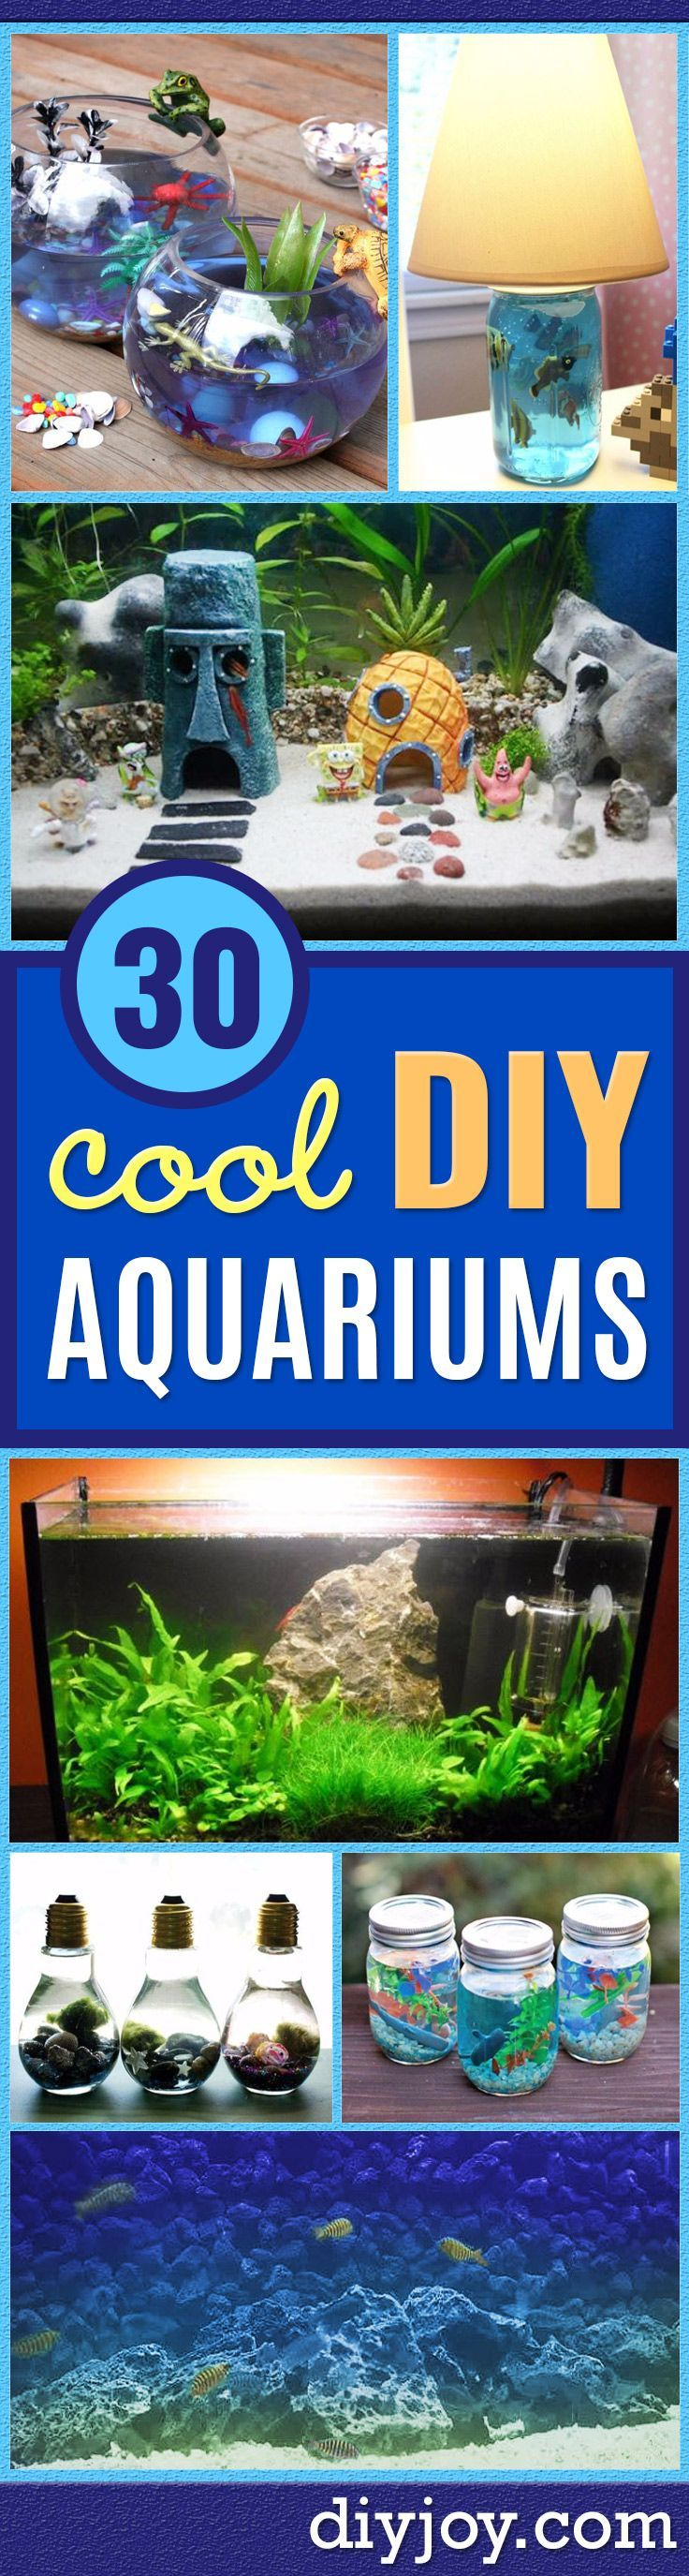 DIY Aquarium Ideas - Cool and Easy Decorations for Tank Aquariums, Mason Jar, Wall and Stand Projects for Fish - Creative Background Ideas - Fun Tutorials for Kids to Make With Plants and Decor - Best Home Decor and Crafts by DIY JOY http://diyjoy.com/diy-aquariums